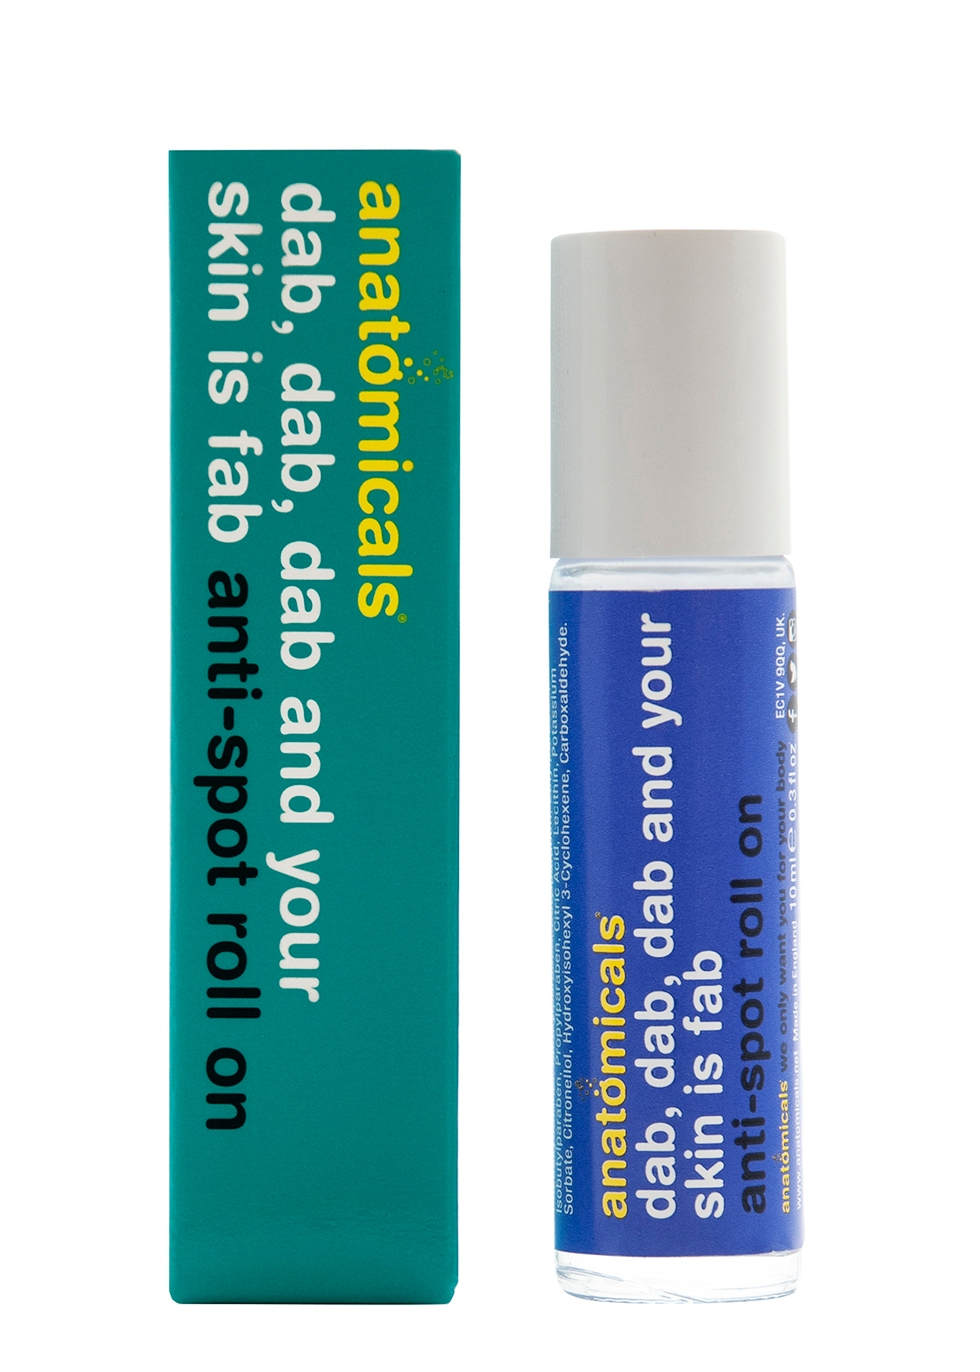 Dab Dab Dab And Your Skin Is Fab Anti-Spot Roll On